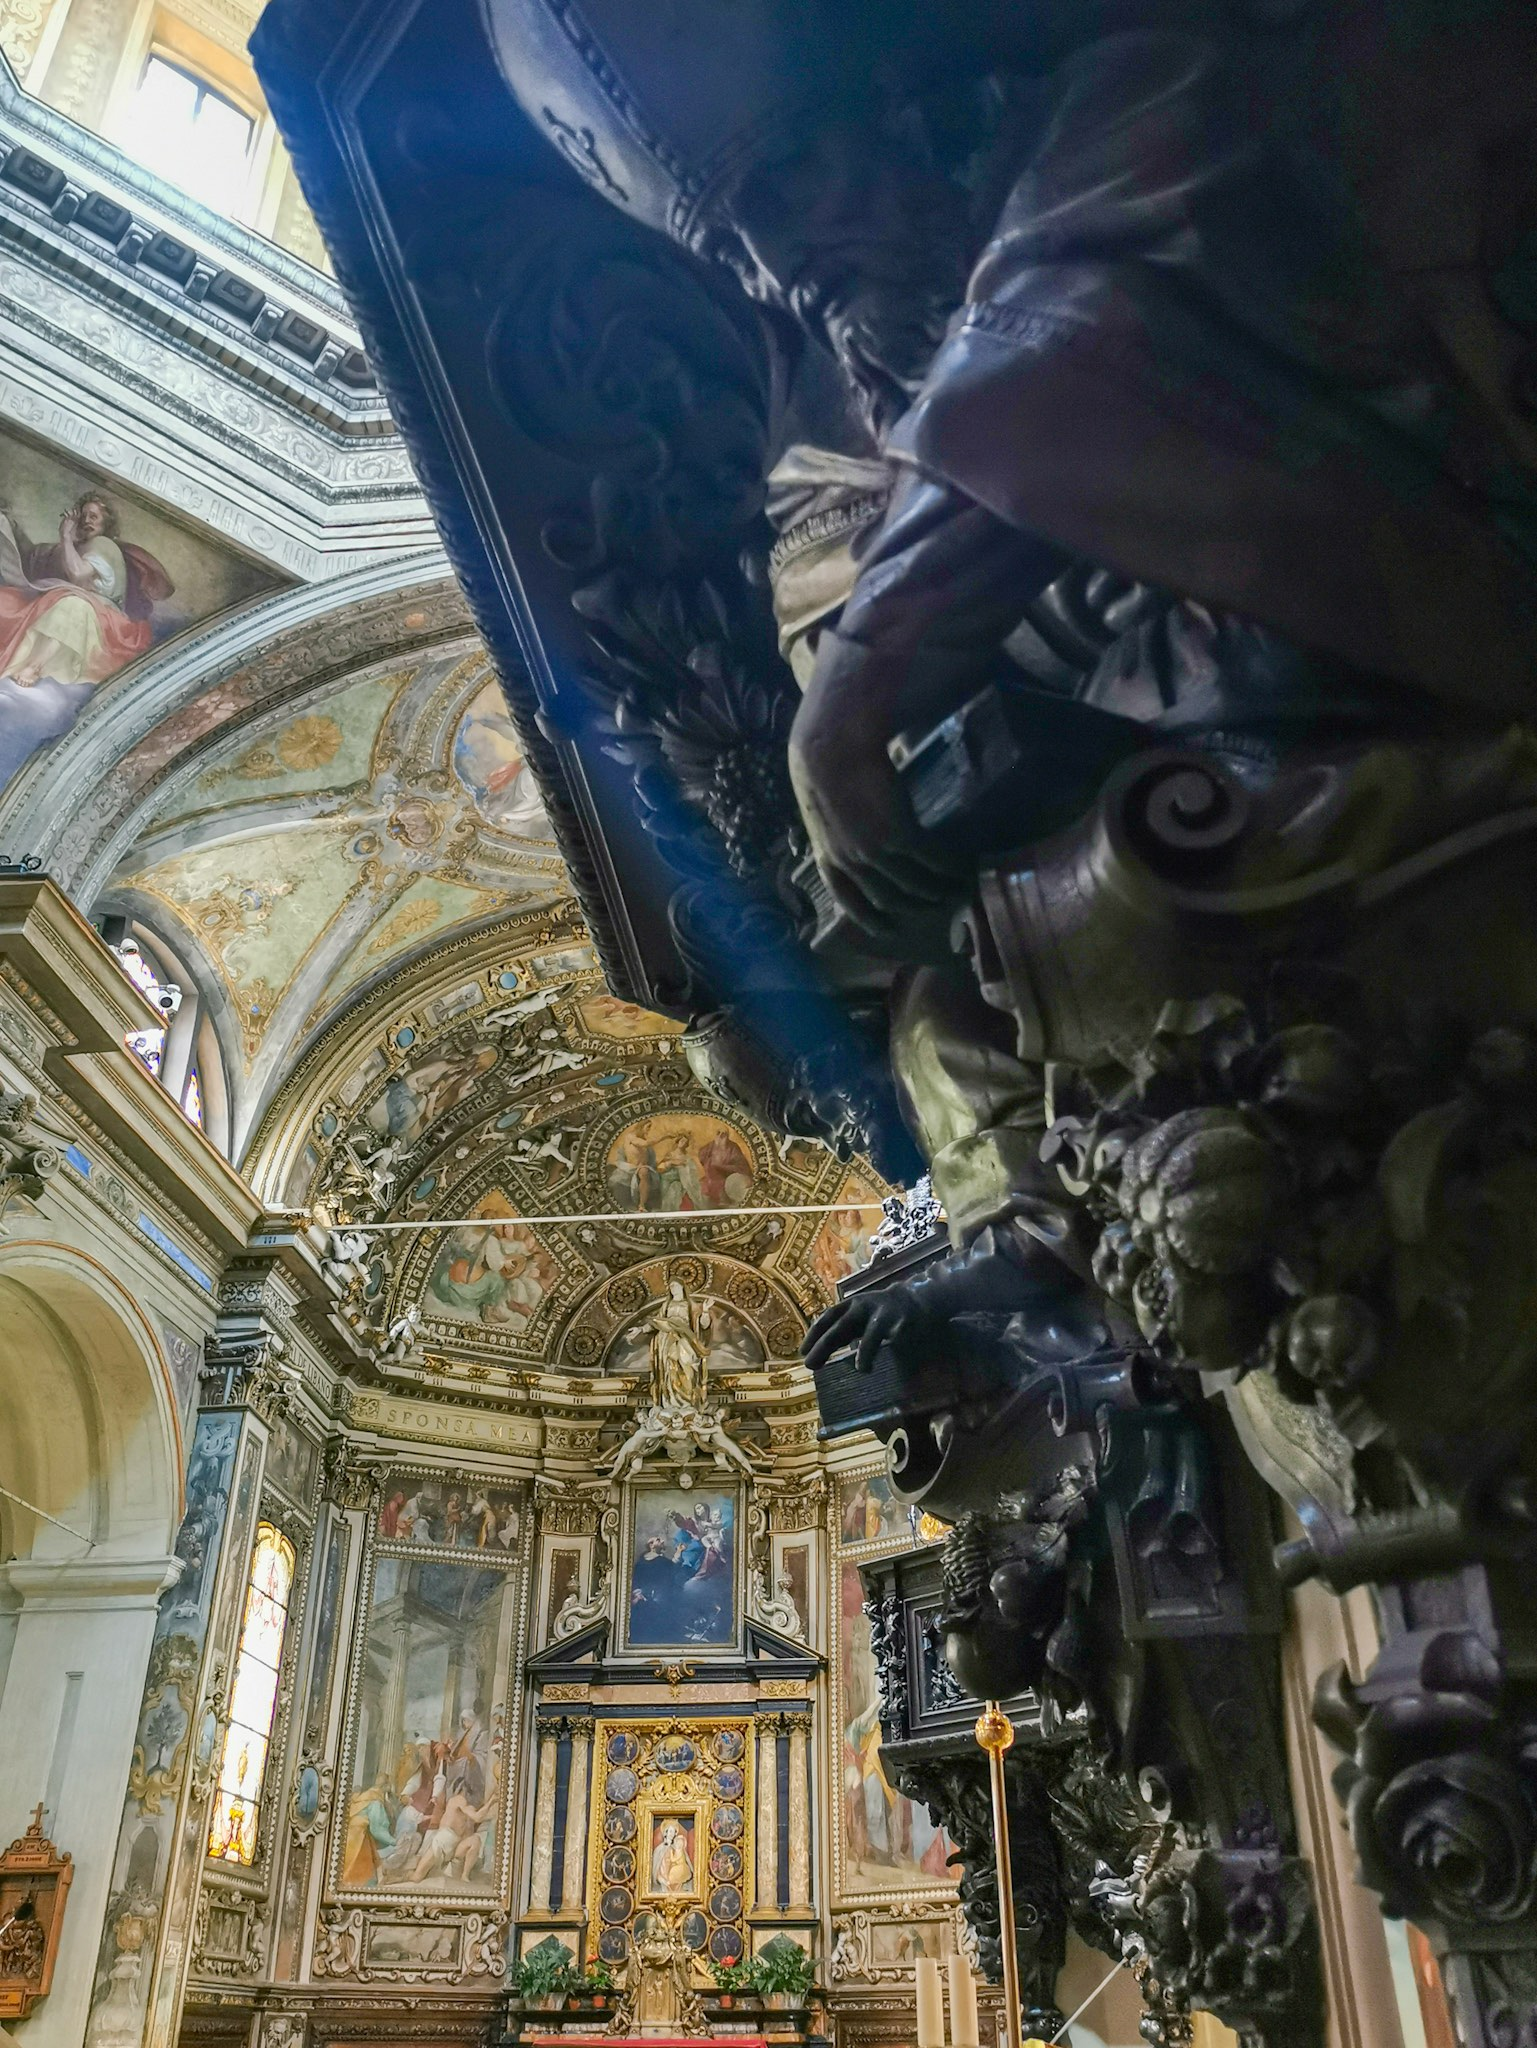 The interior of the Basilica of San Vittore in Varese